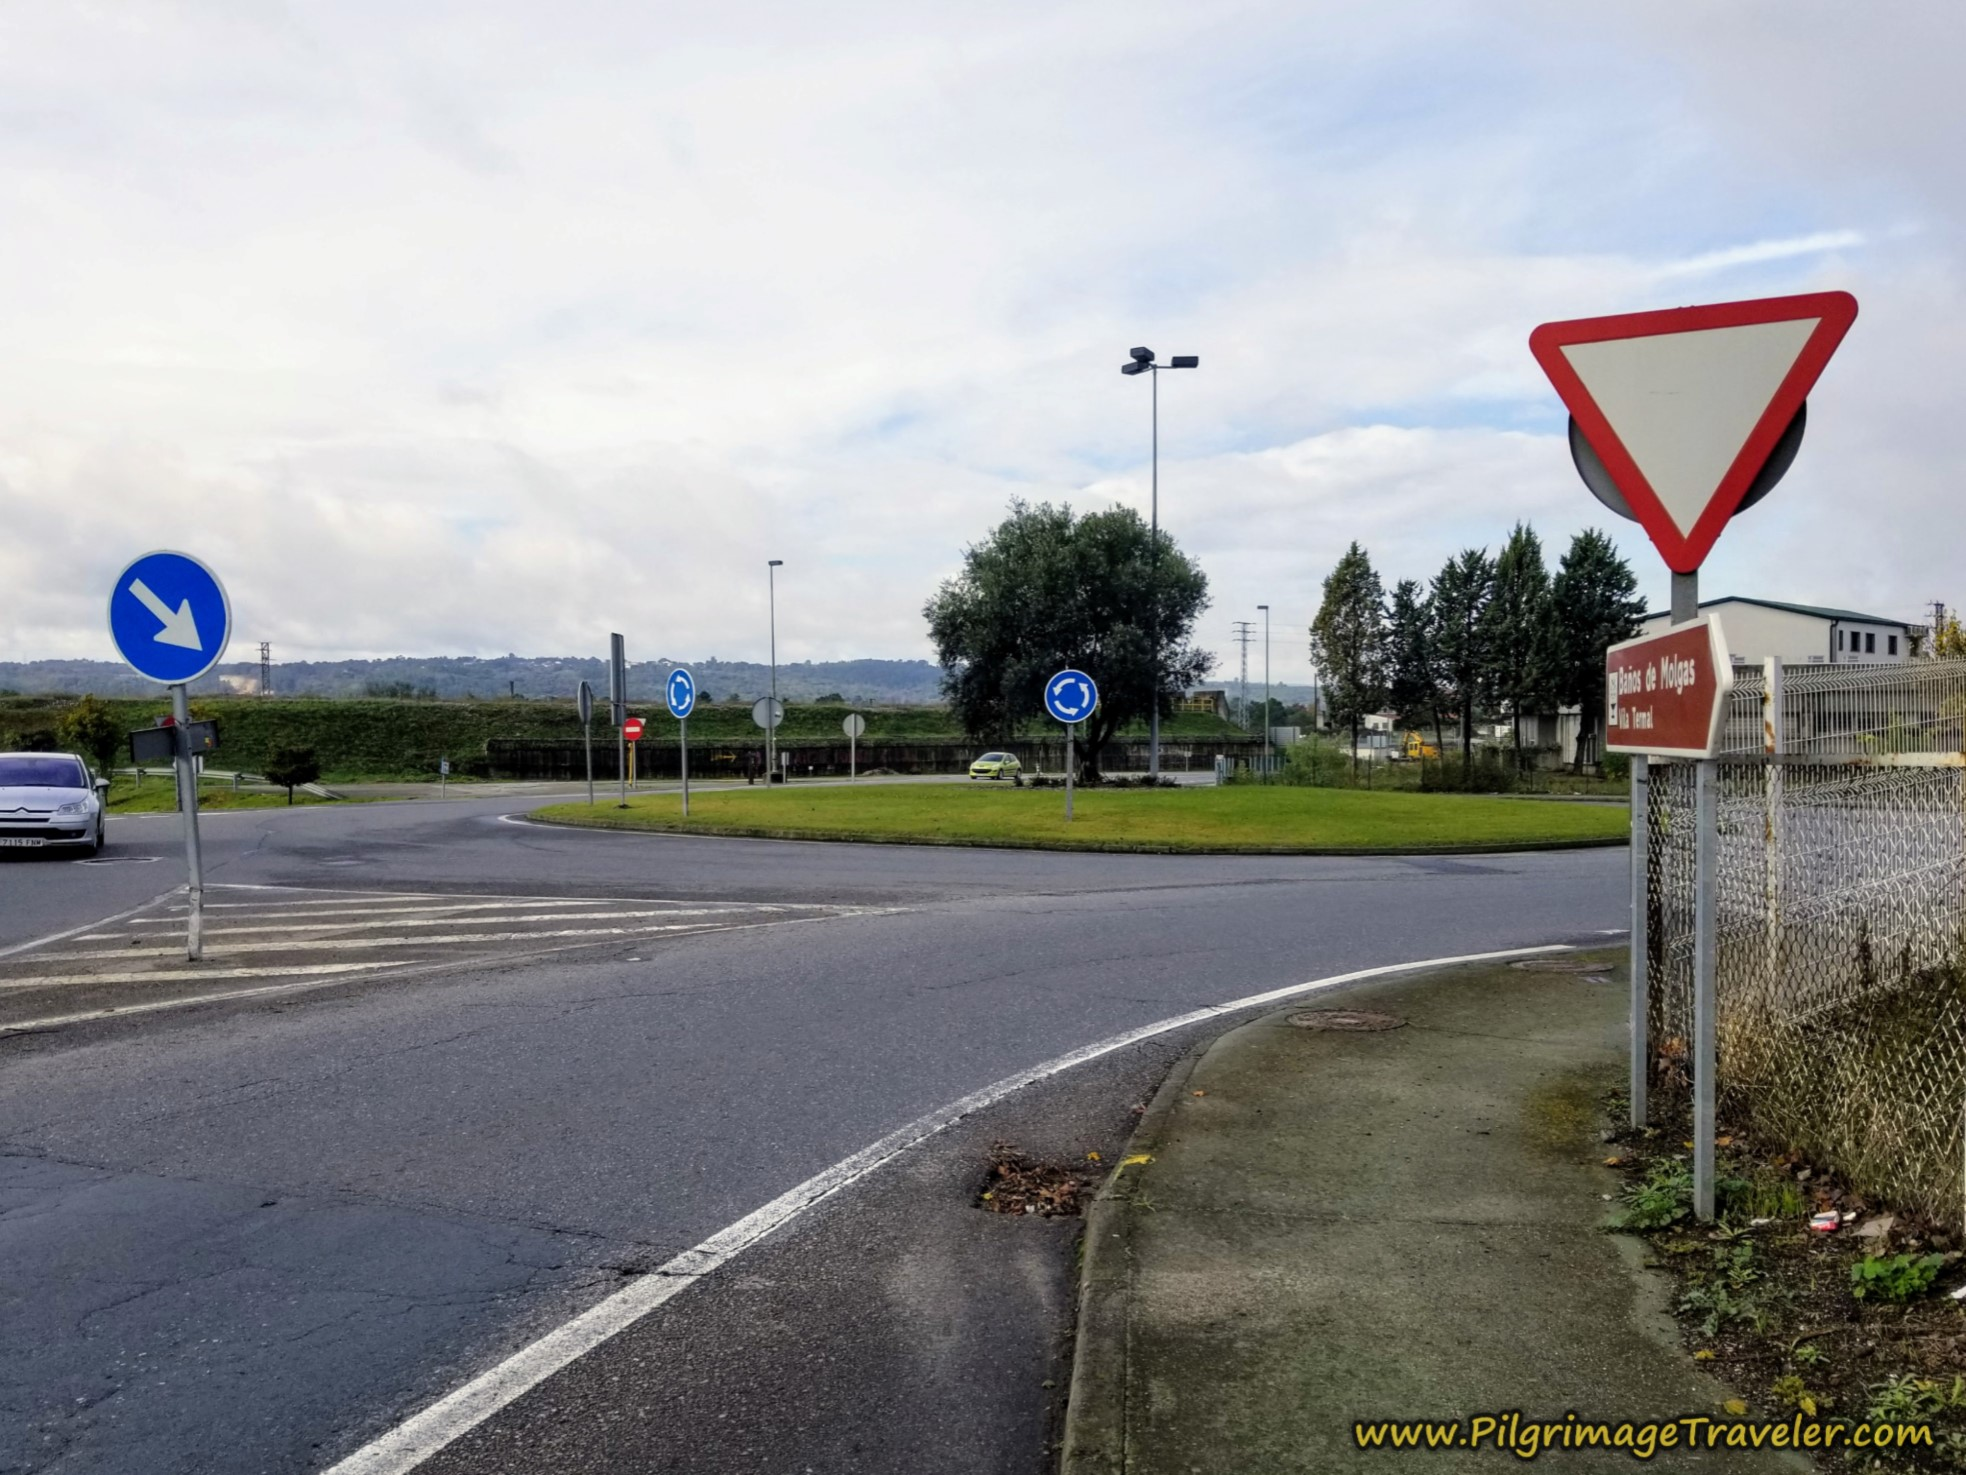 Turn Right at Roundabout